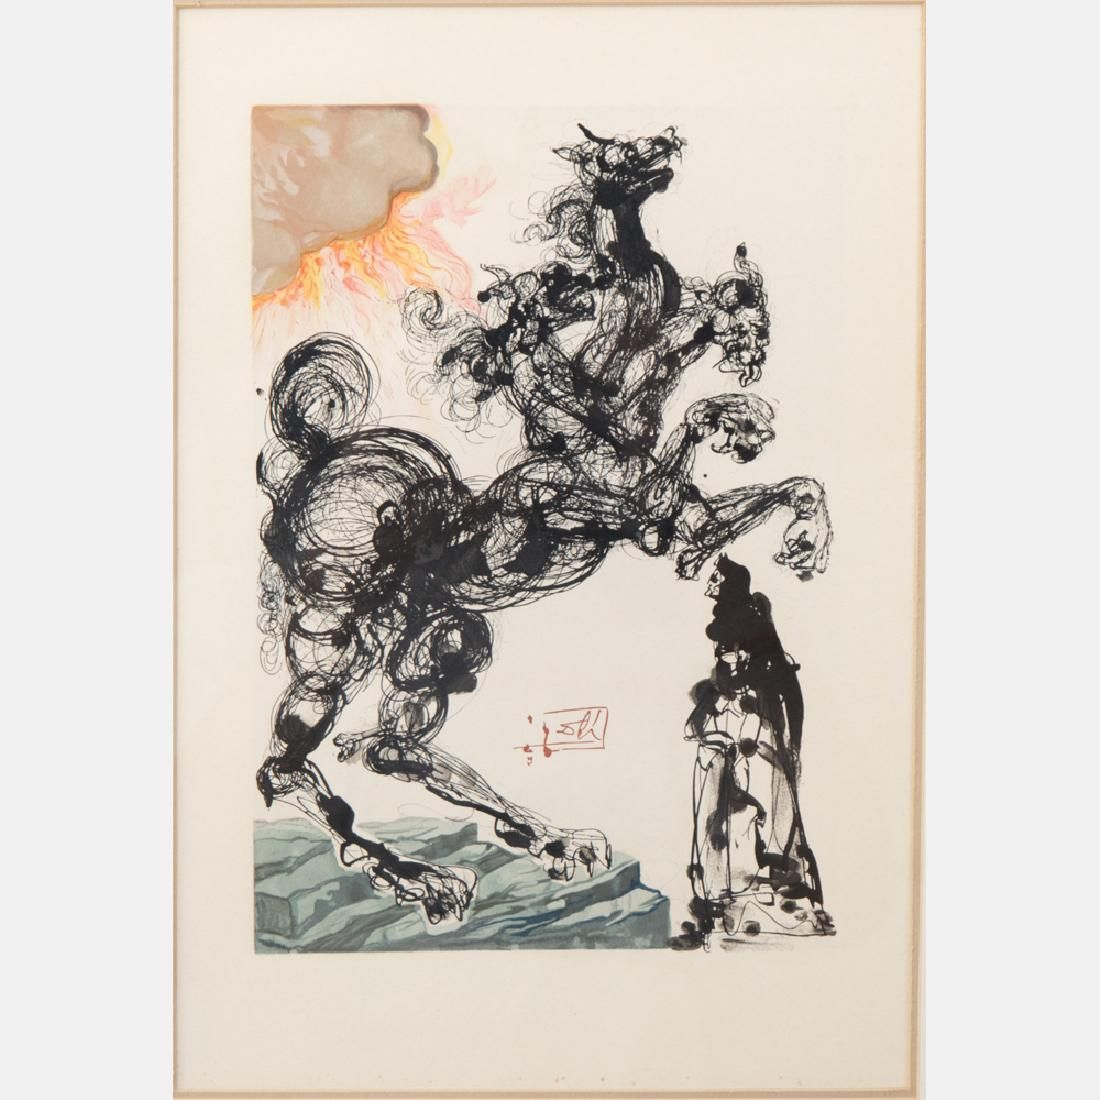 Salvador Dali (1904-1989) Cerberus/Inferno 6 (From the